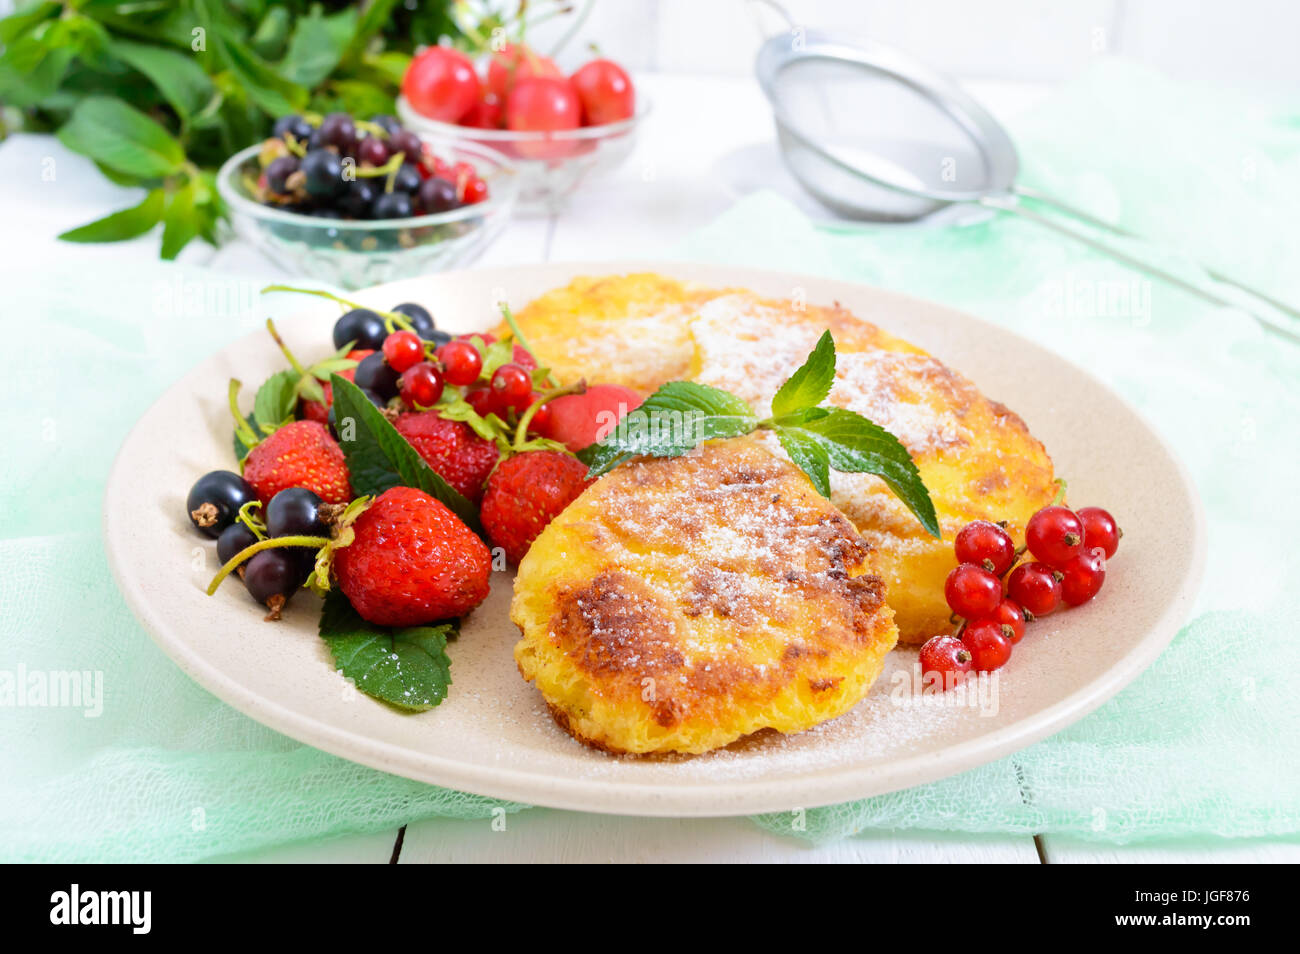 Swell Golden Cottage Cheese Pancakes With Fresh Berries On A Plate Download Free Architecture Designs Rallybritishbridgeorg